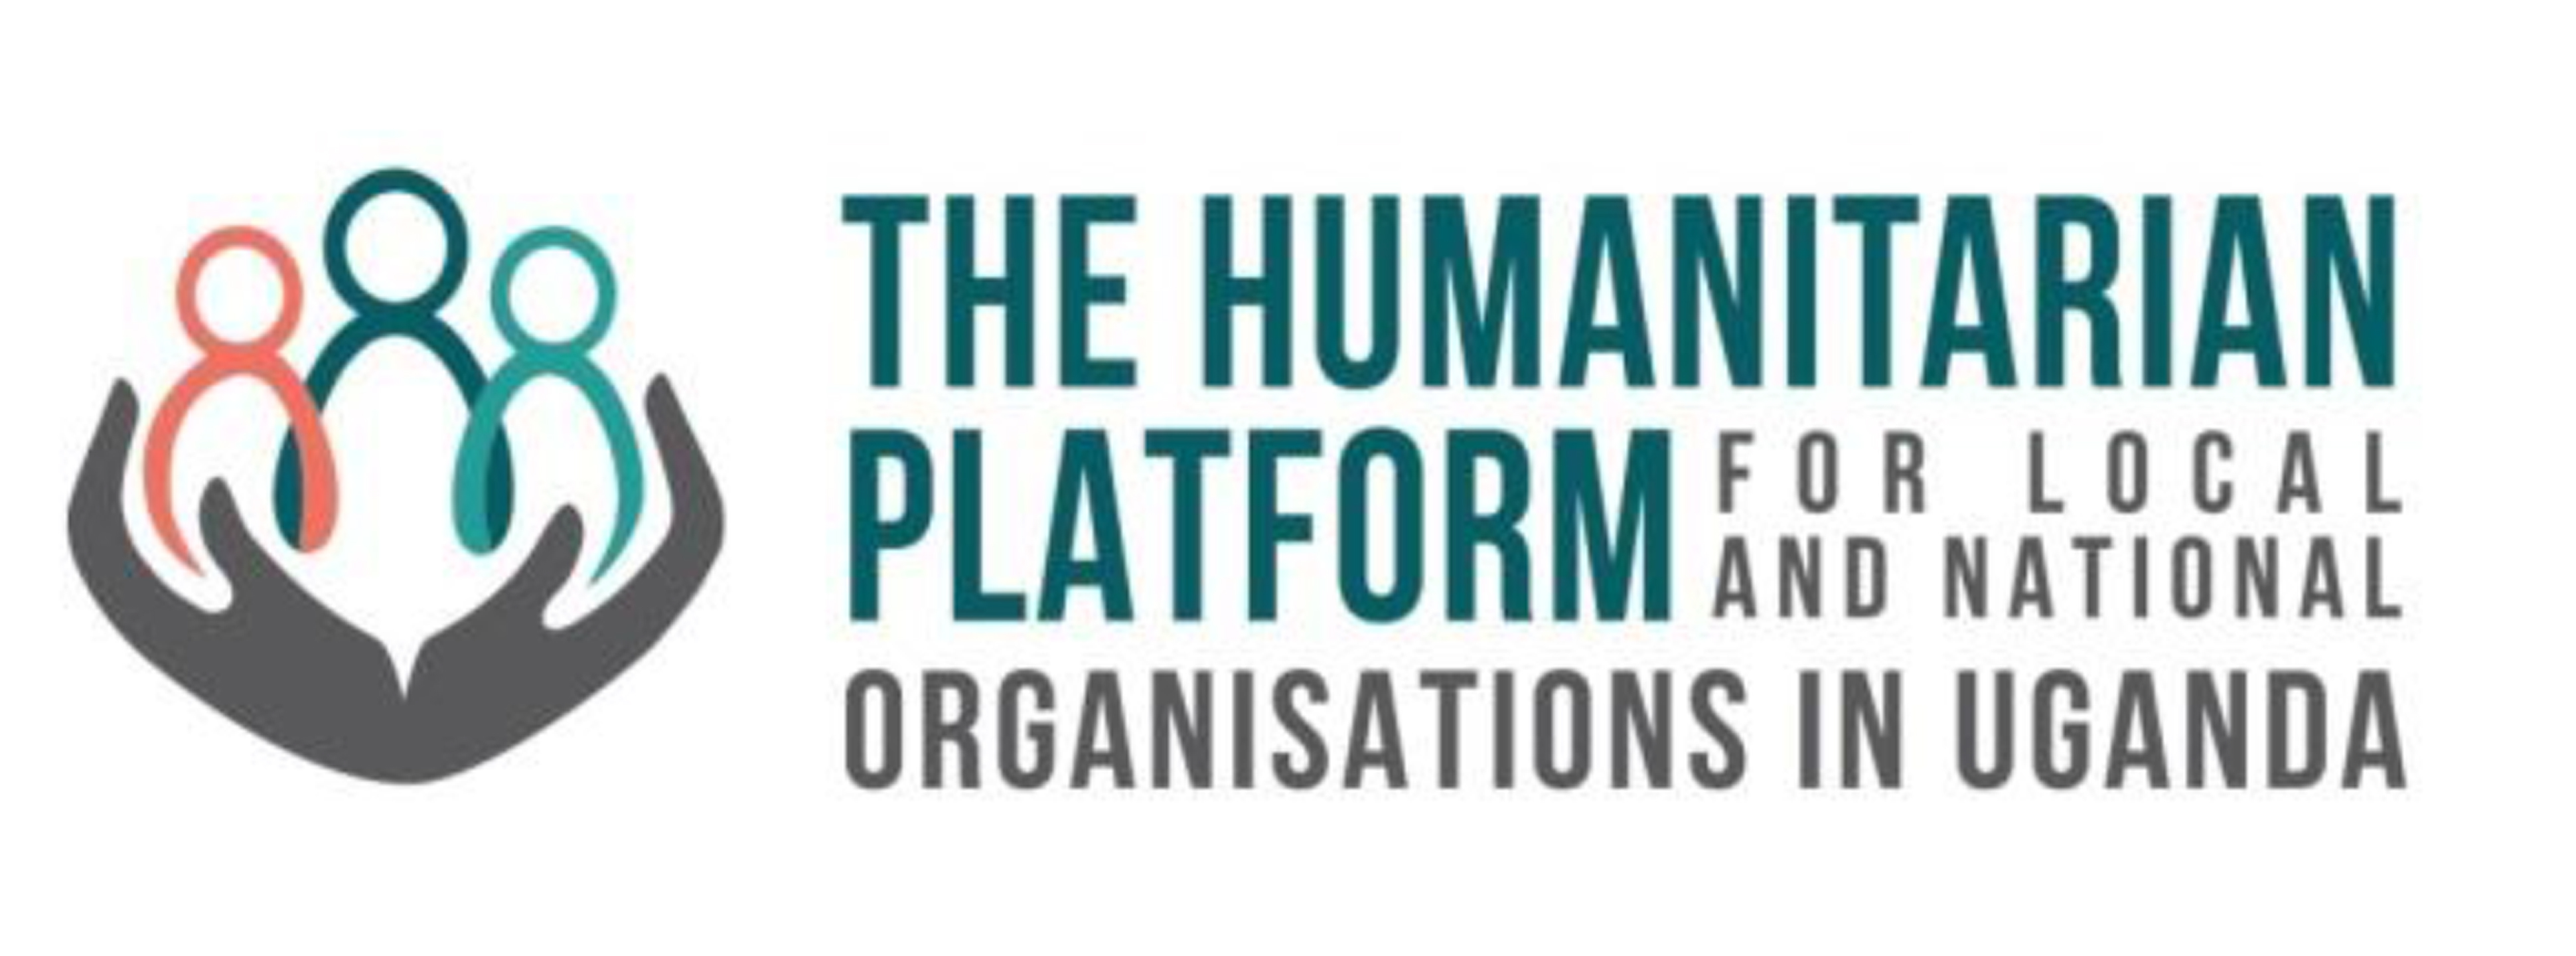 Humanitarian platform for local and national organisations in Uganda  (HPLNOU)